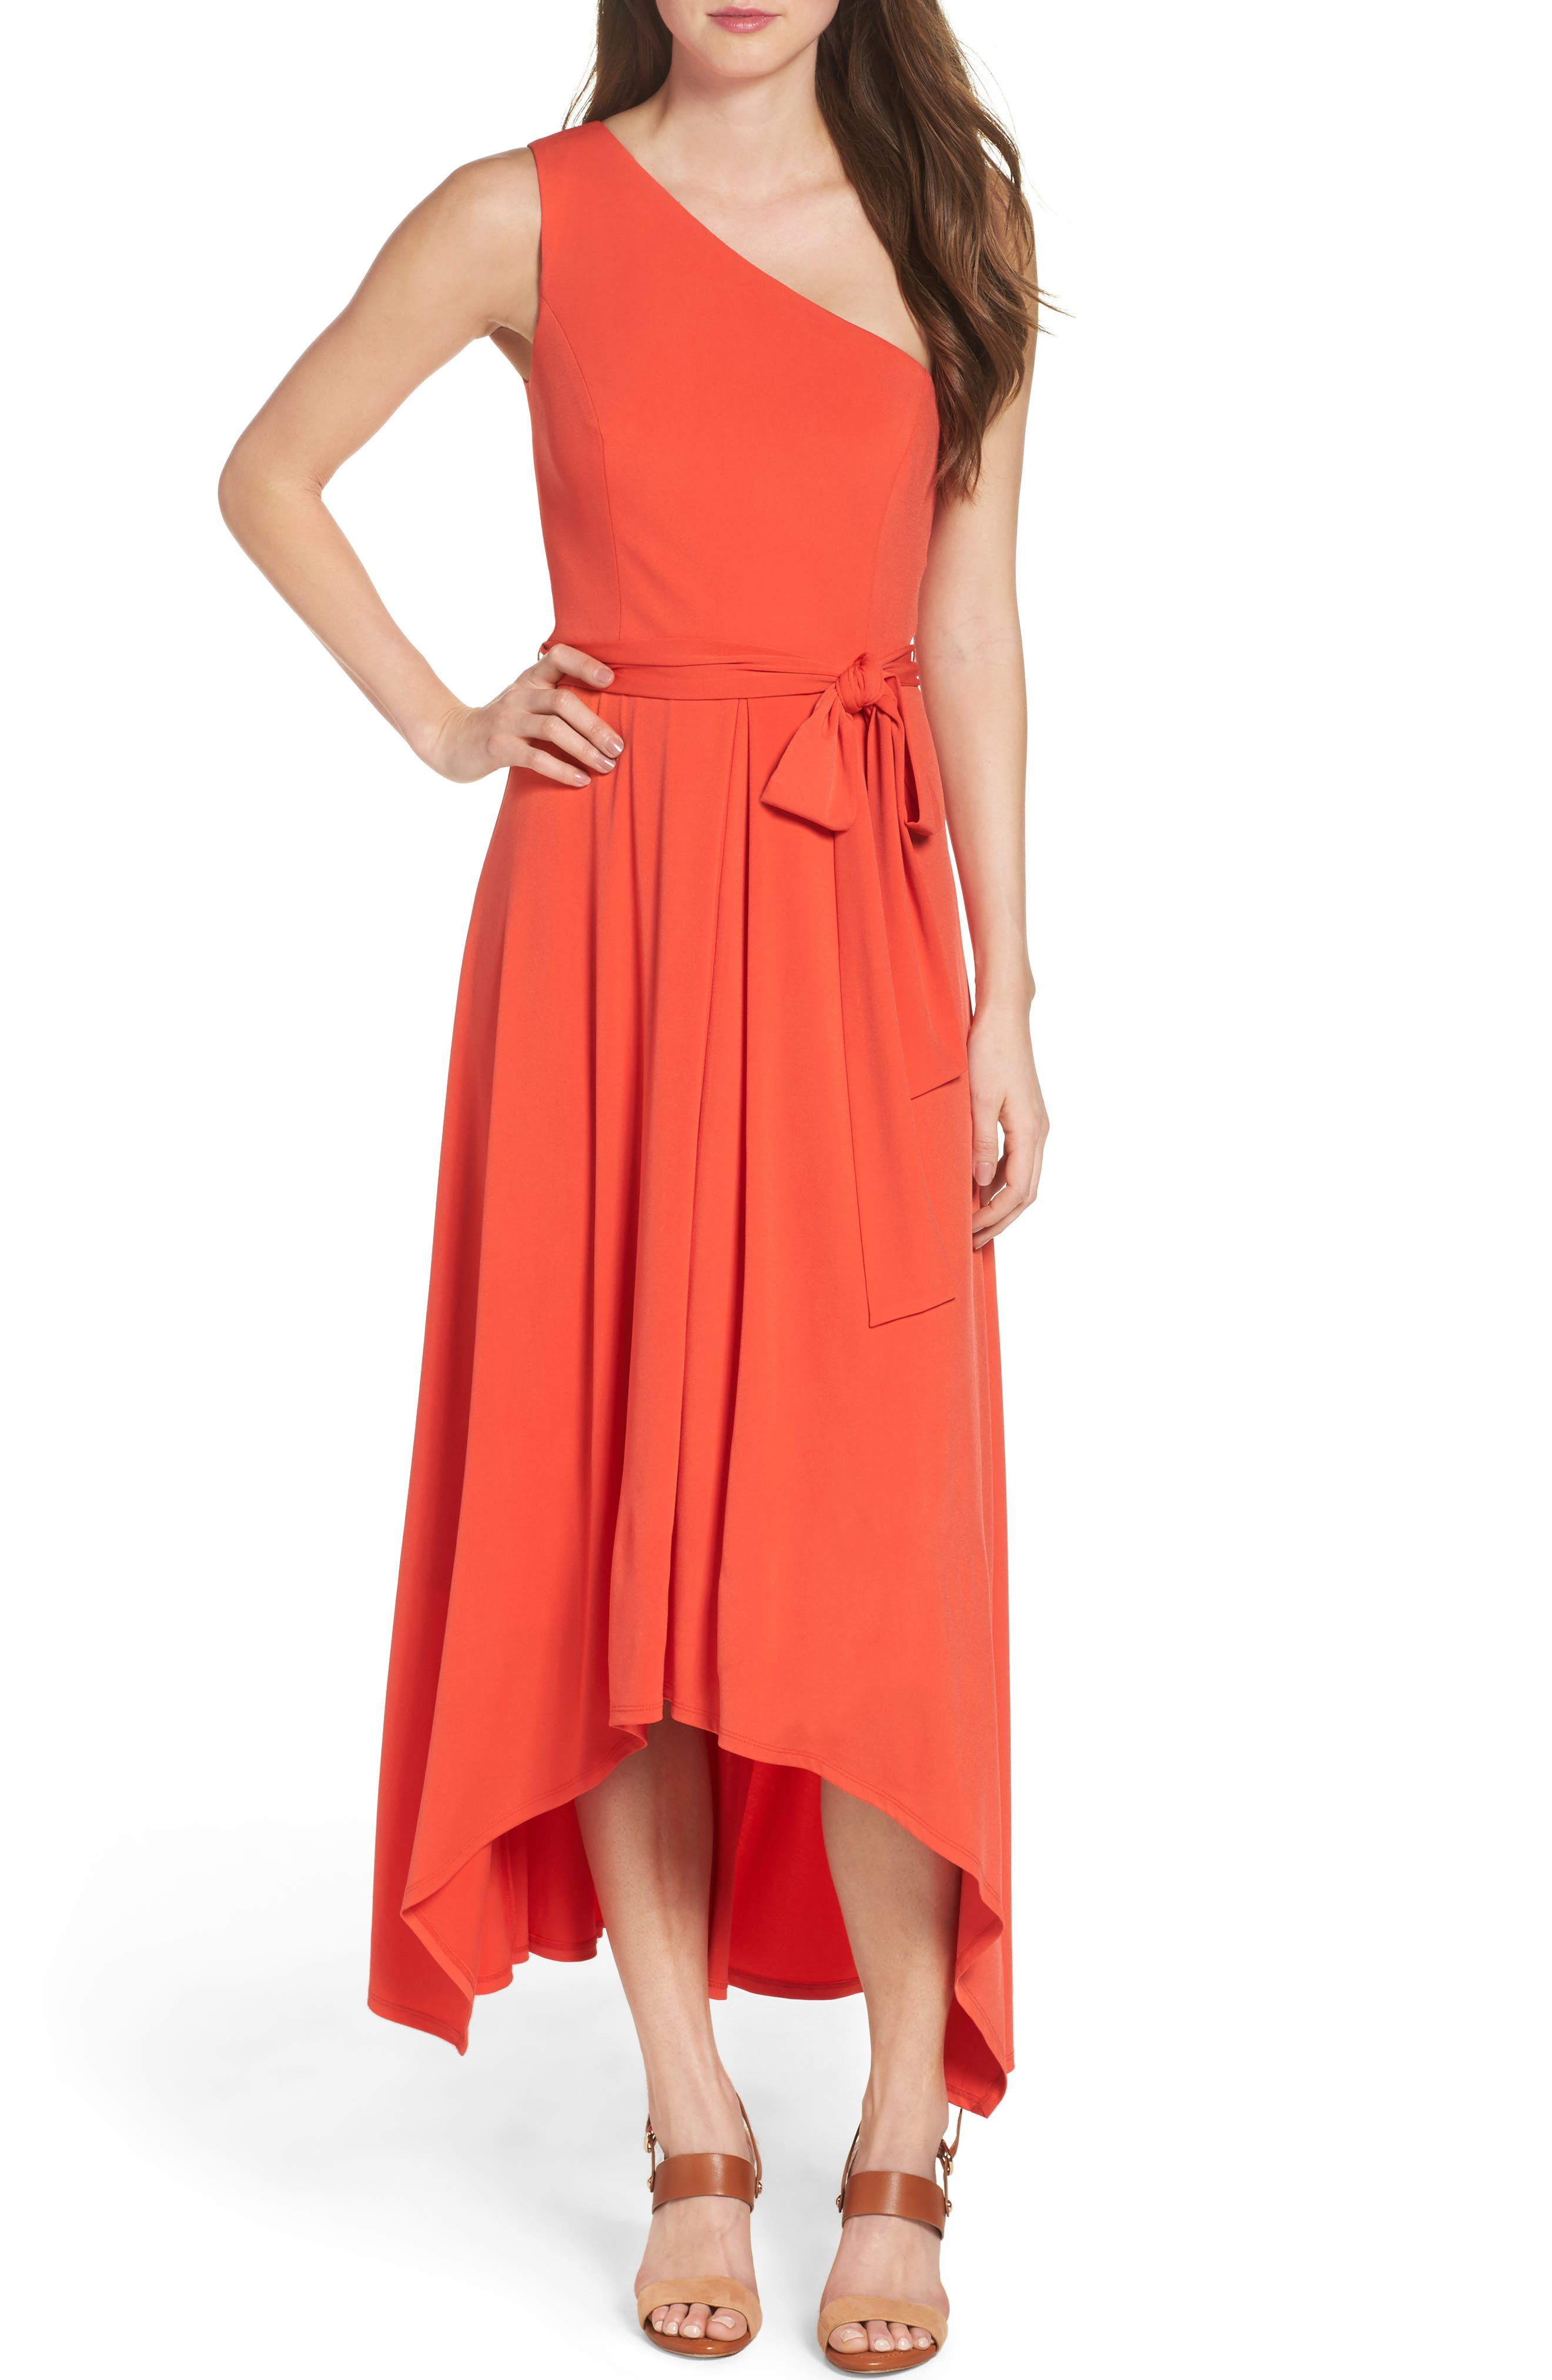 Petite Casual Dresses (37) Petite Cocktail Dresses (5) Petite Maxi Dresses (3) Petite Wear to Work Dresses (26) Rompers & Jumpsuits (2) Narrow results by - Brand Brand.